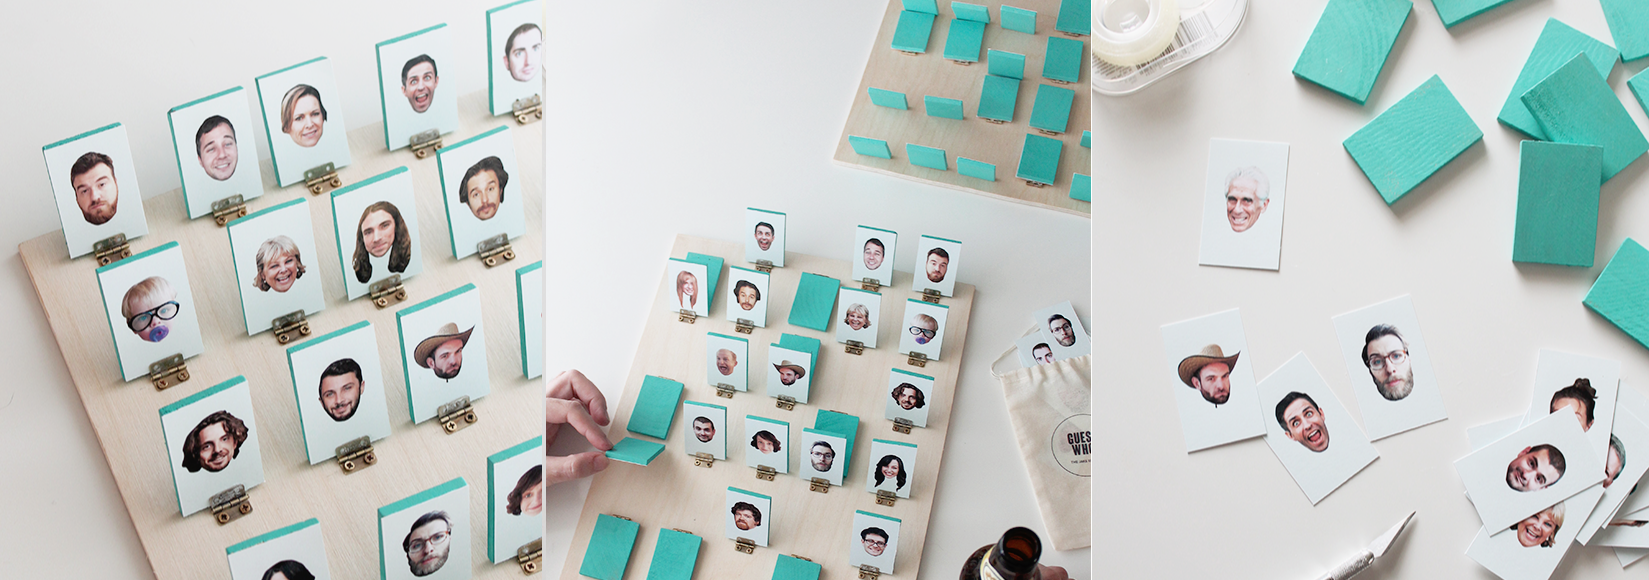 Personalised Guess Who? board made using MDF and coloured wooden boards.